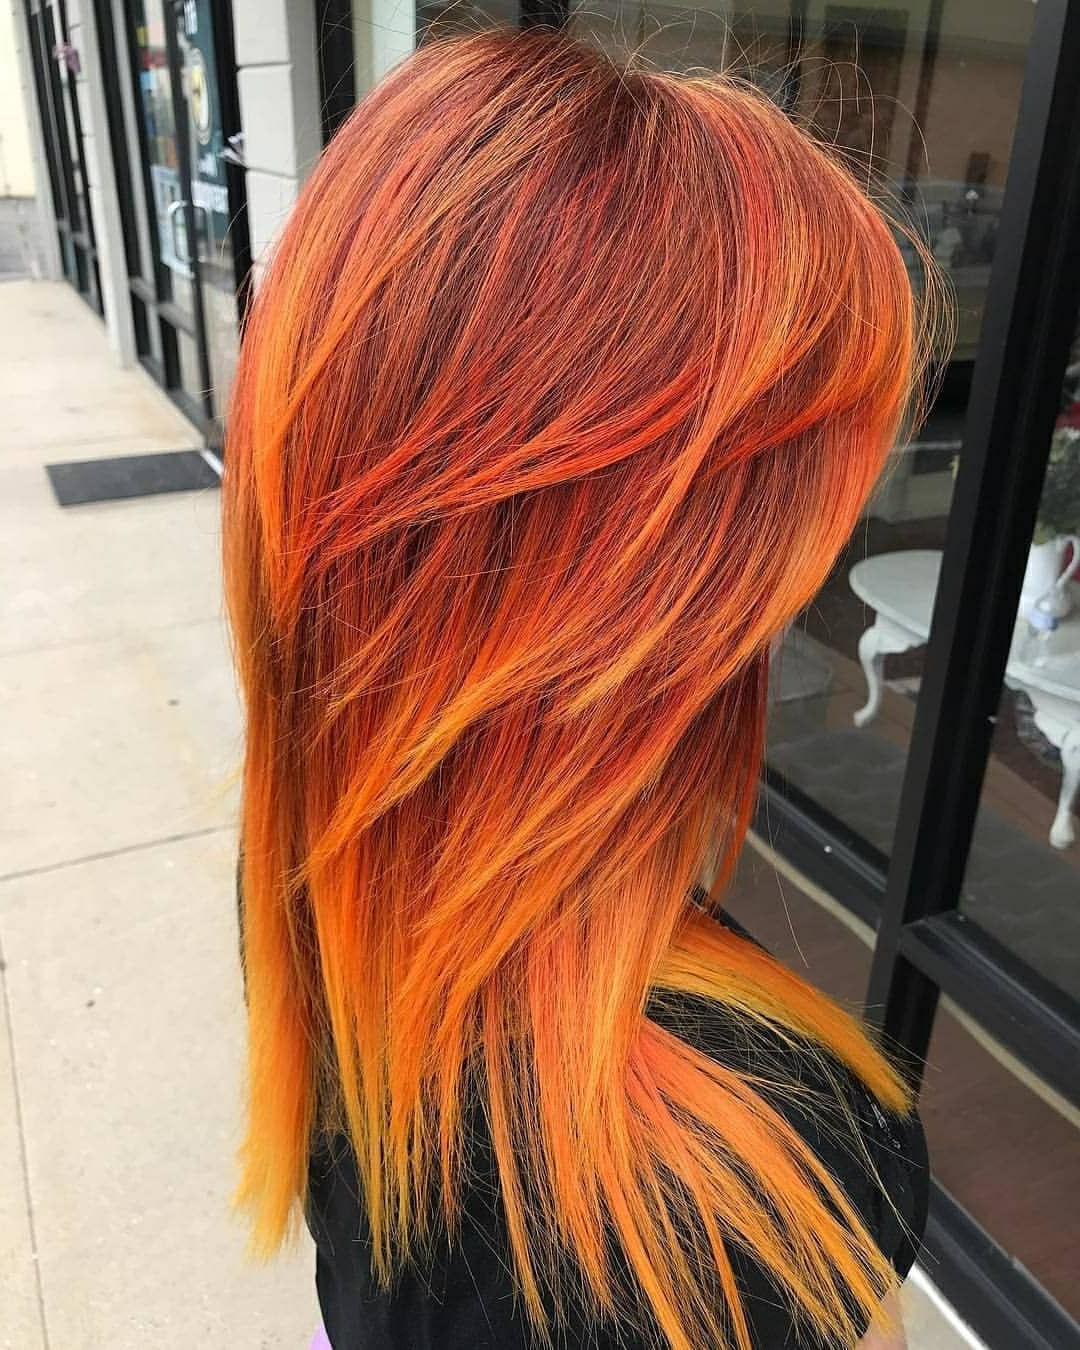 Hairbyjayme Xo Used Extreme Orange And Neon Yellow To Create In Most Recent Red, Orange And Yellow Half Updo Hairstyles (View 5 of 20)